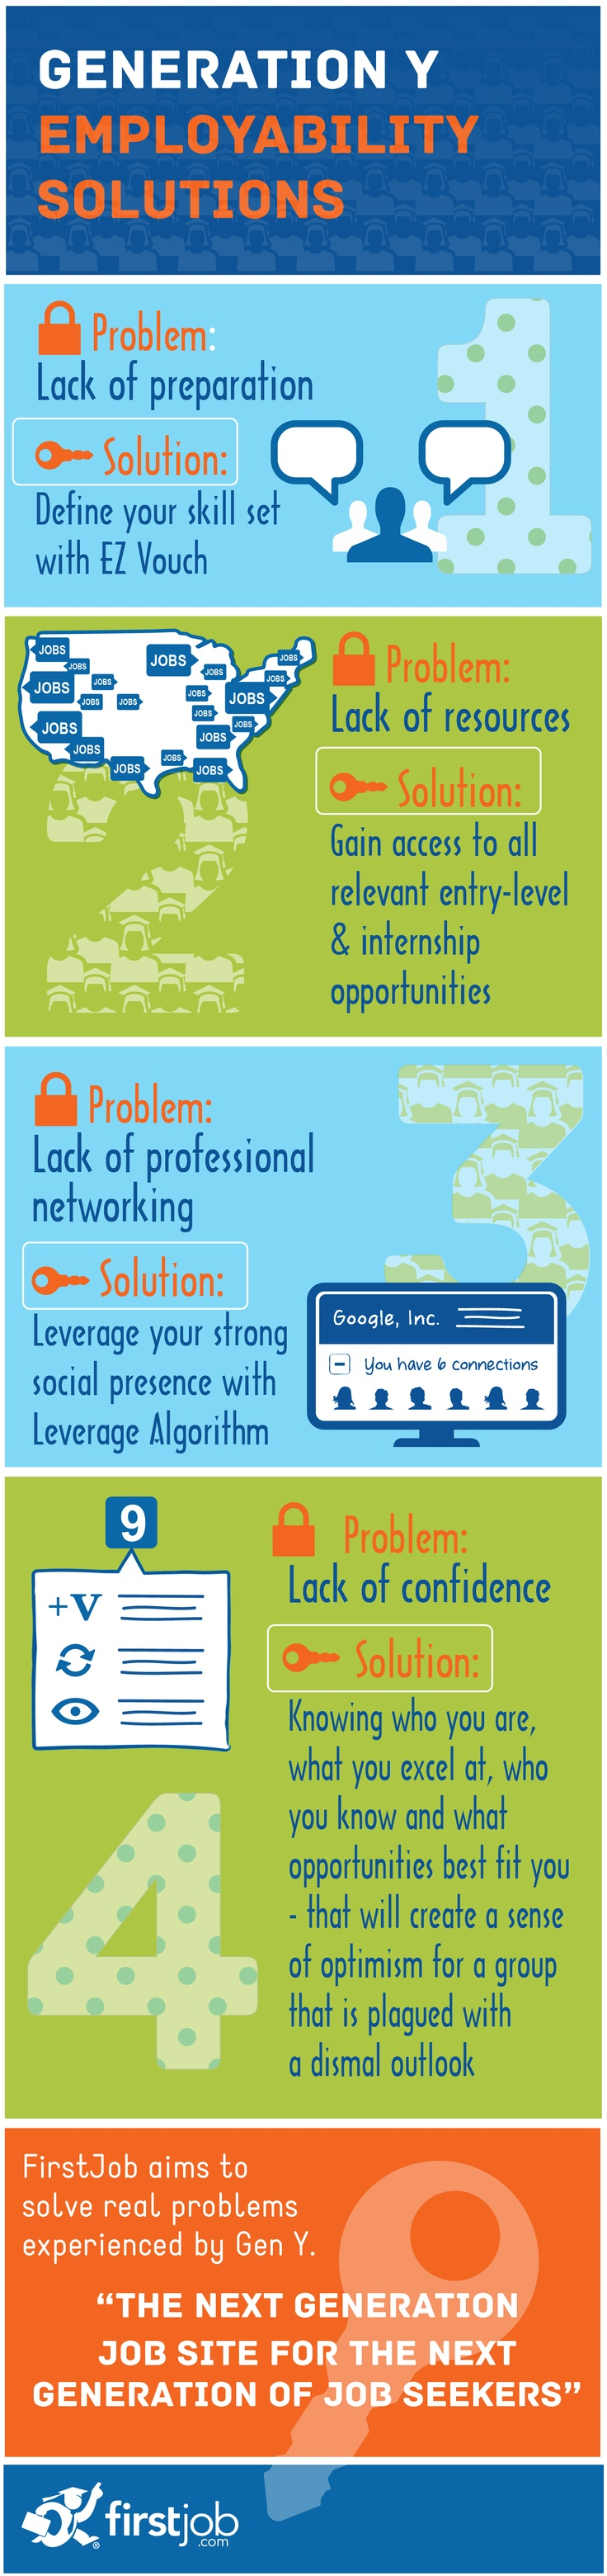 Job Hunting? Here Is An Infographic About Solutions For Job Seeking Gen Y  Ers.